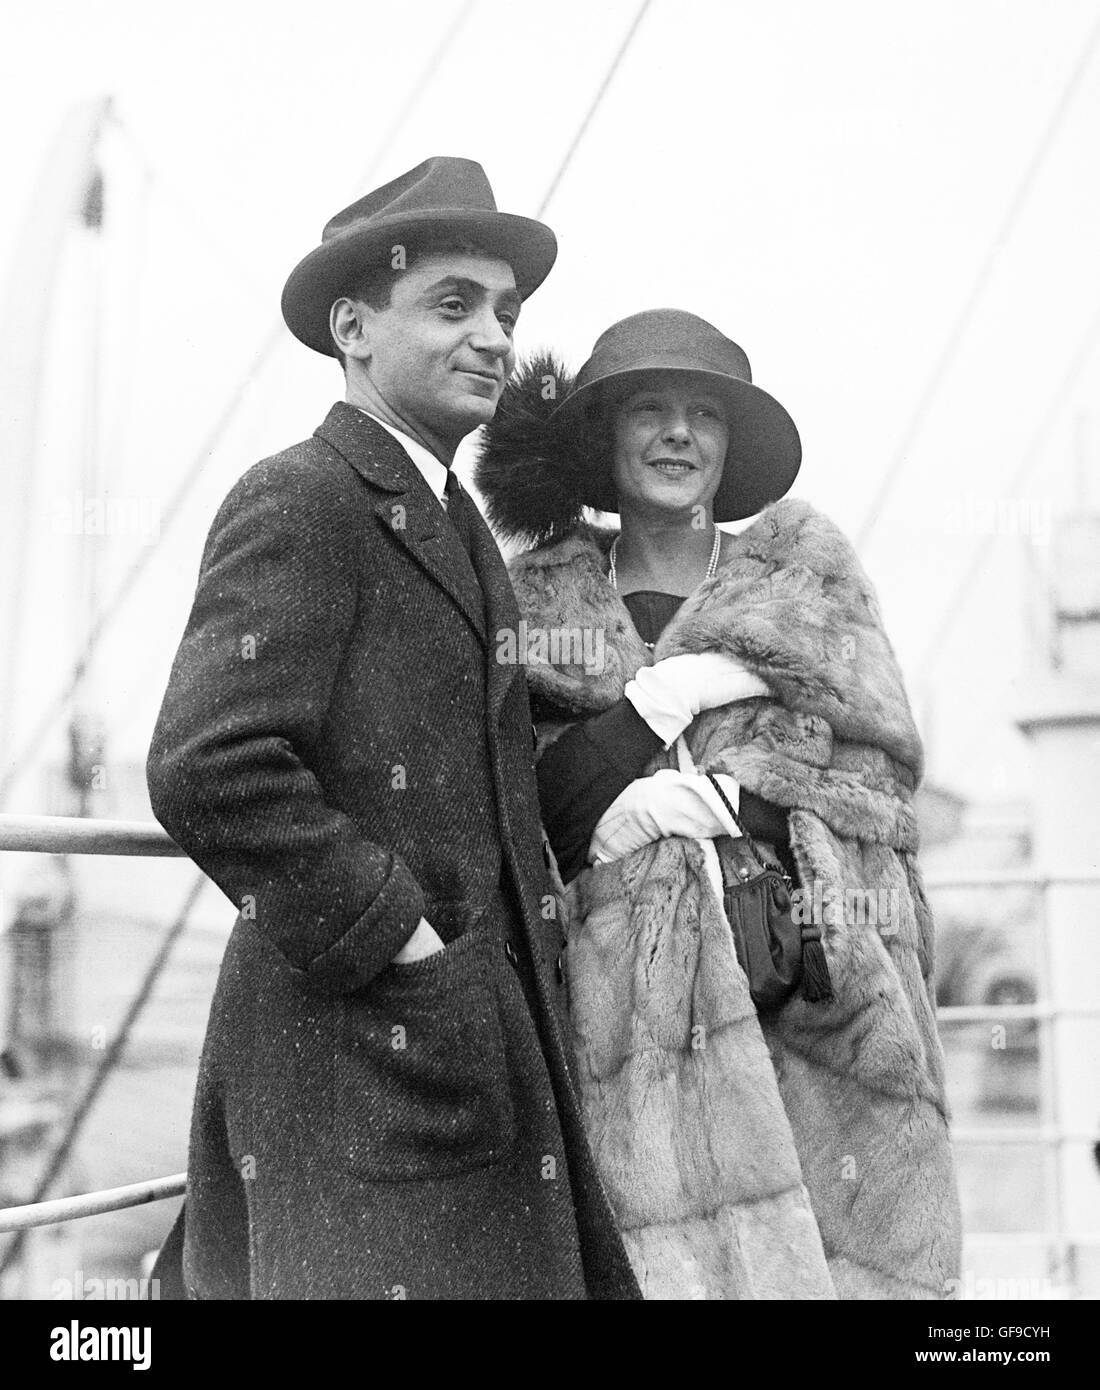 Irving Berlin (1888-1989) with his first wife, Dorothy Goetz. Photo from Bain News Service, undated but c.1912. - Stock Image